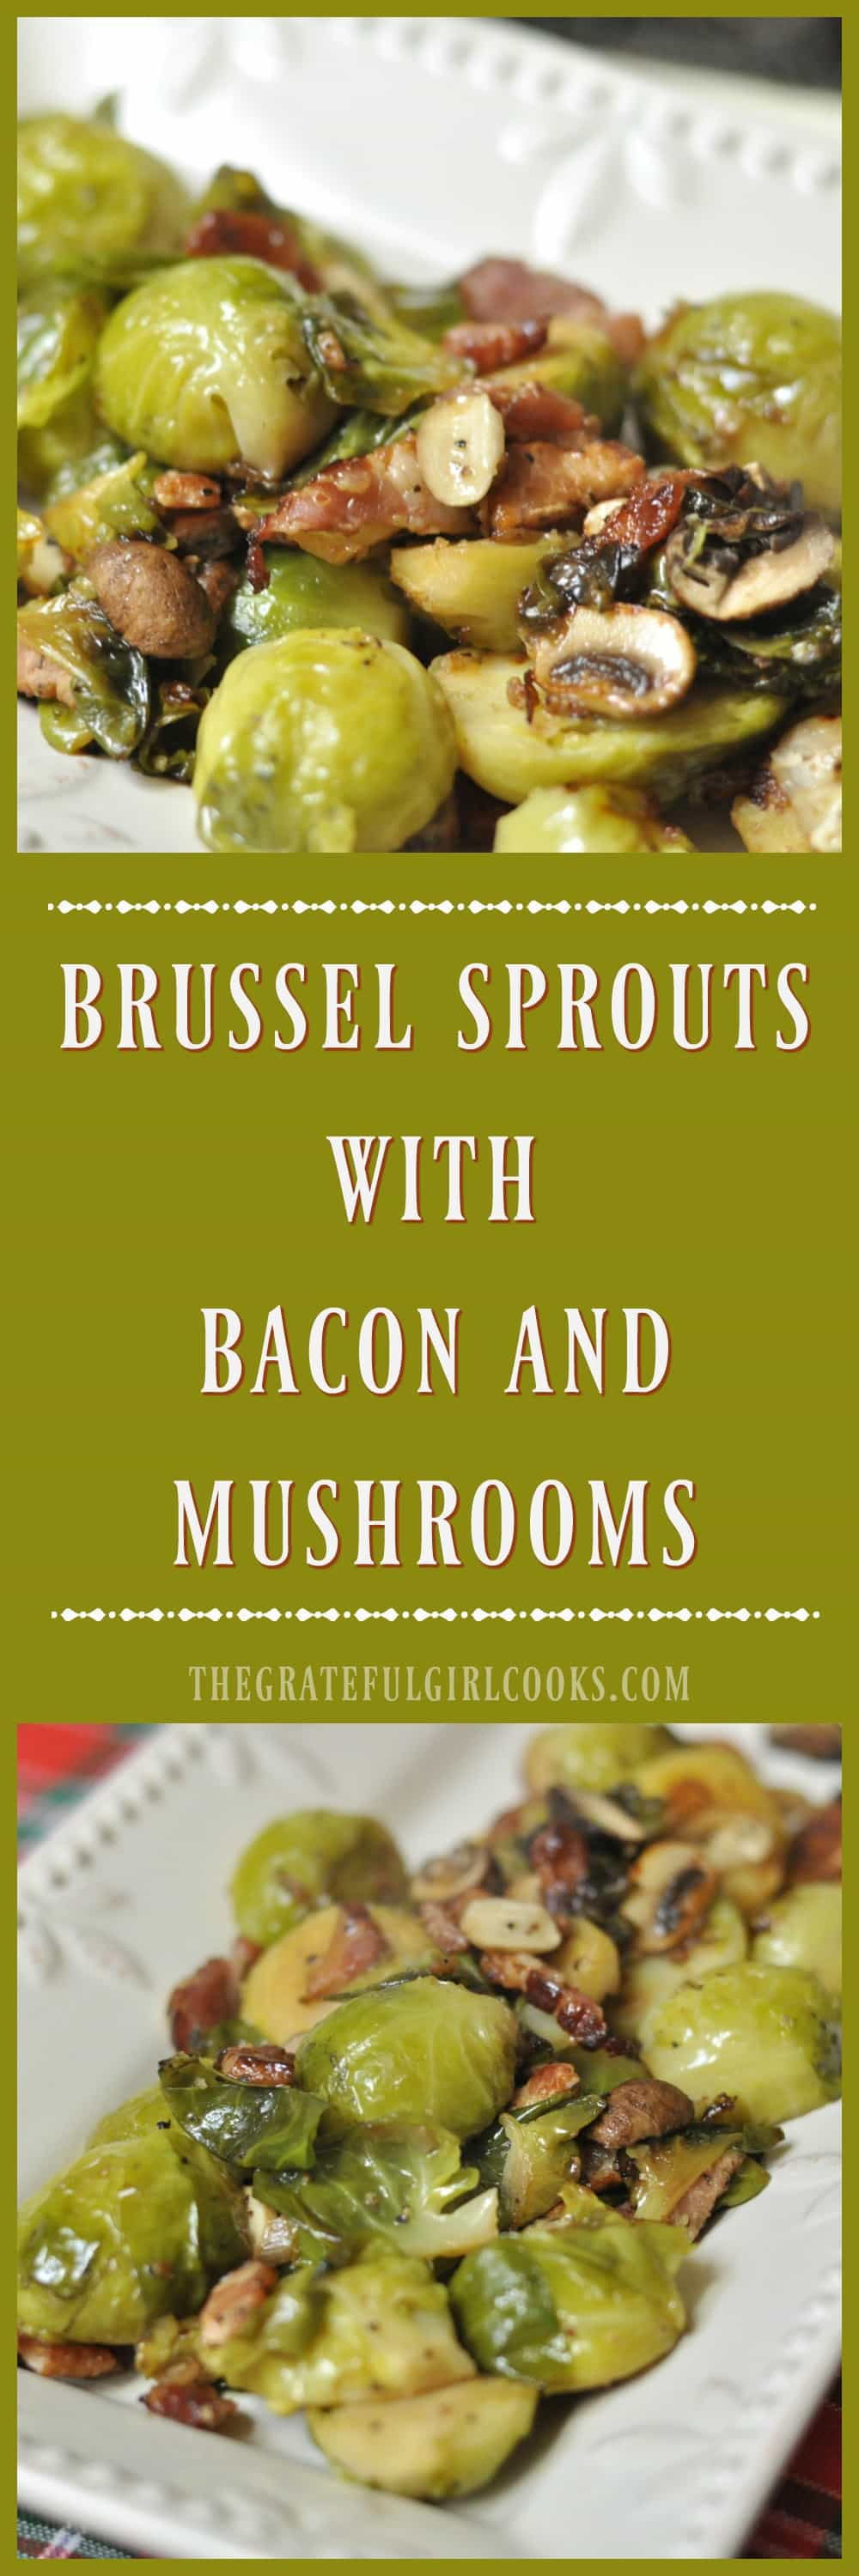 Brussel Sprouts with Bacon and Mushrooms / The Grateful Girl Cooks!